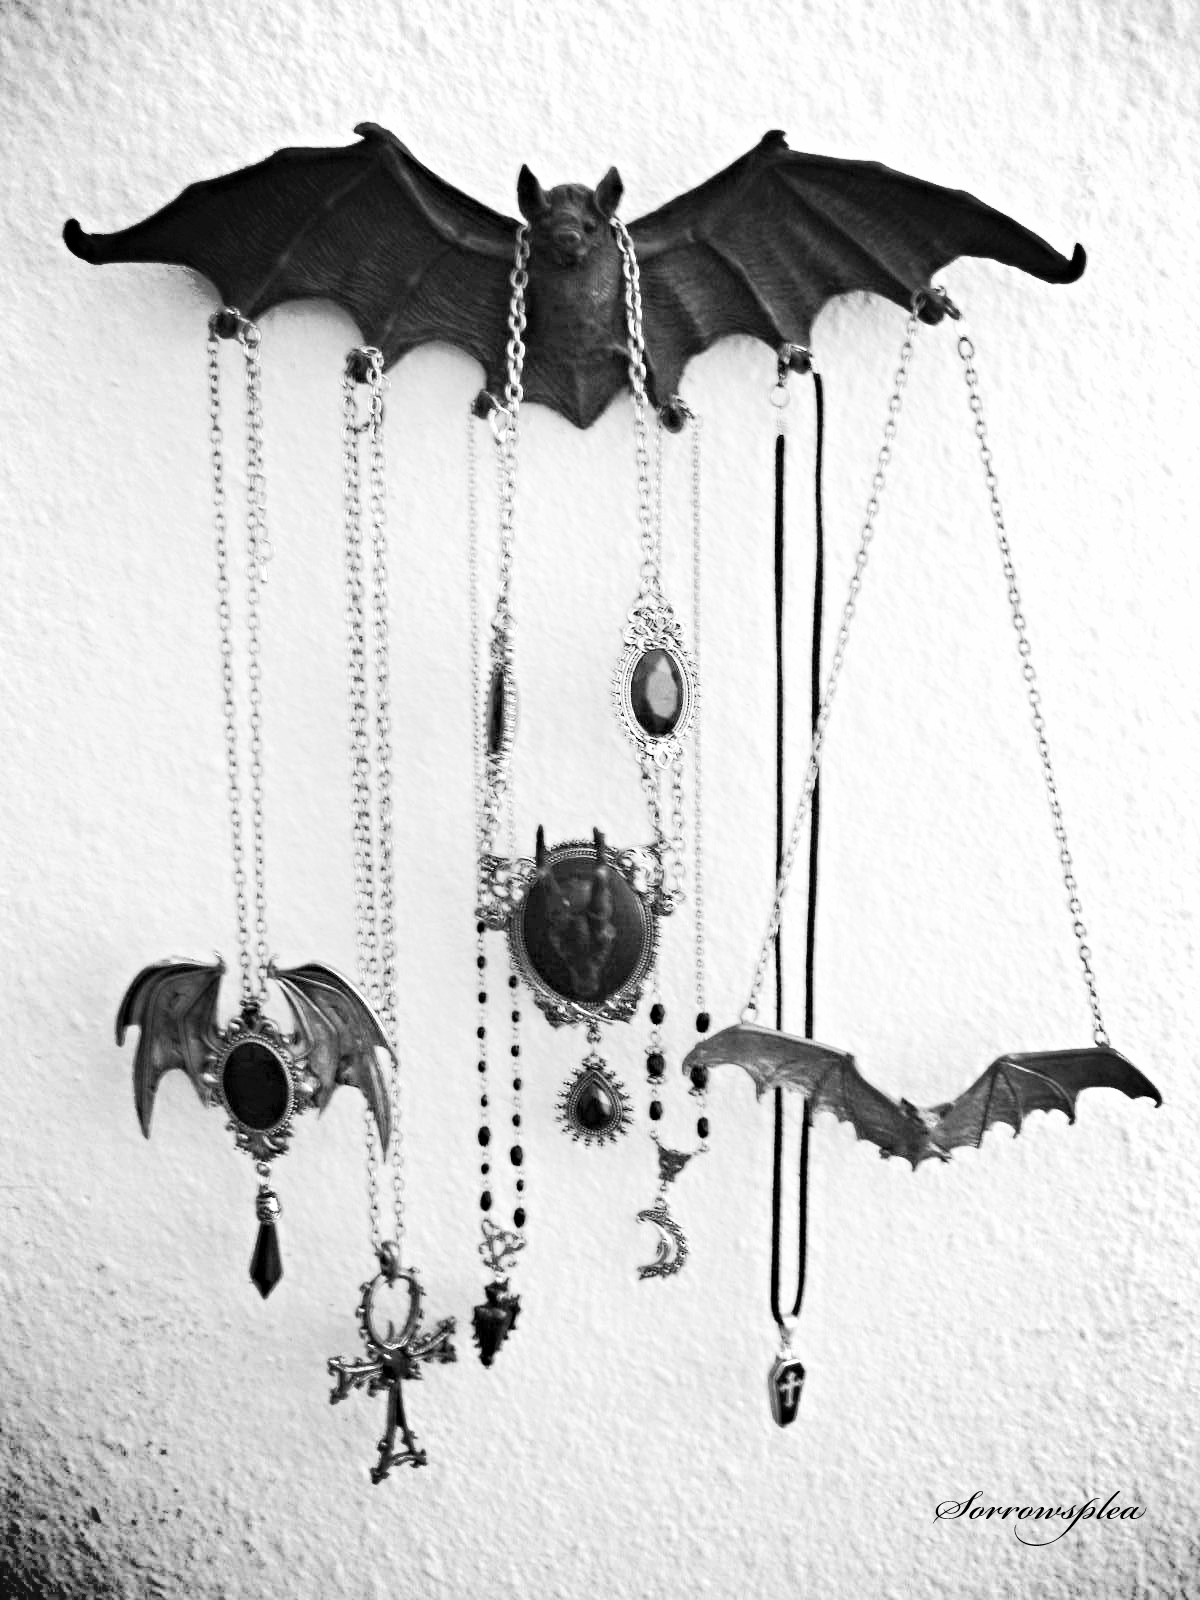 Design Tosacano Vampire Bat Key Holder Wall Sculpture Original Idea And Photo By Sorrowsplea On Pinterest A Ha Link To Purchase